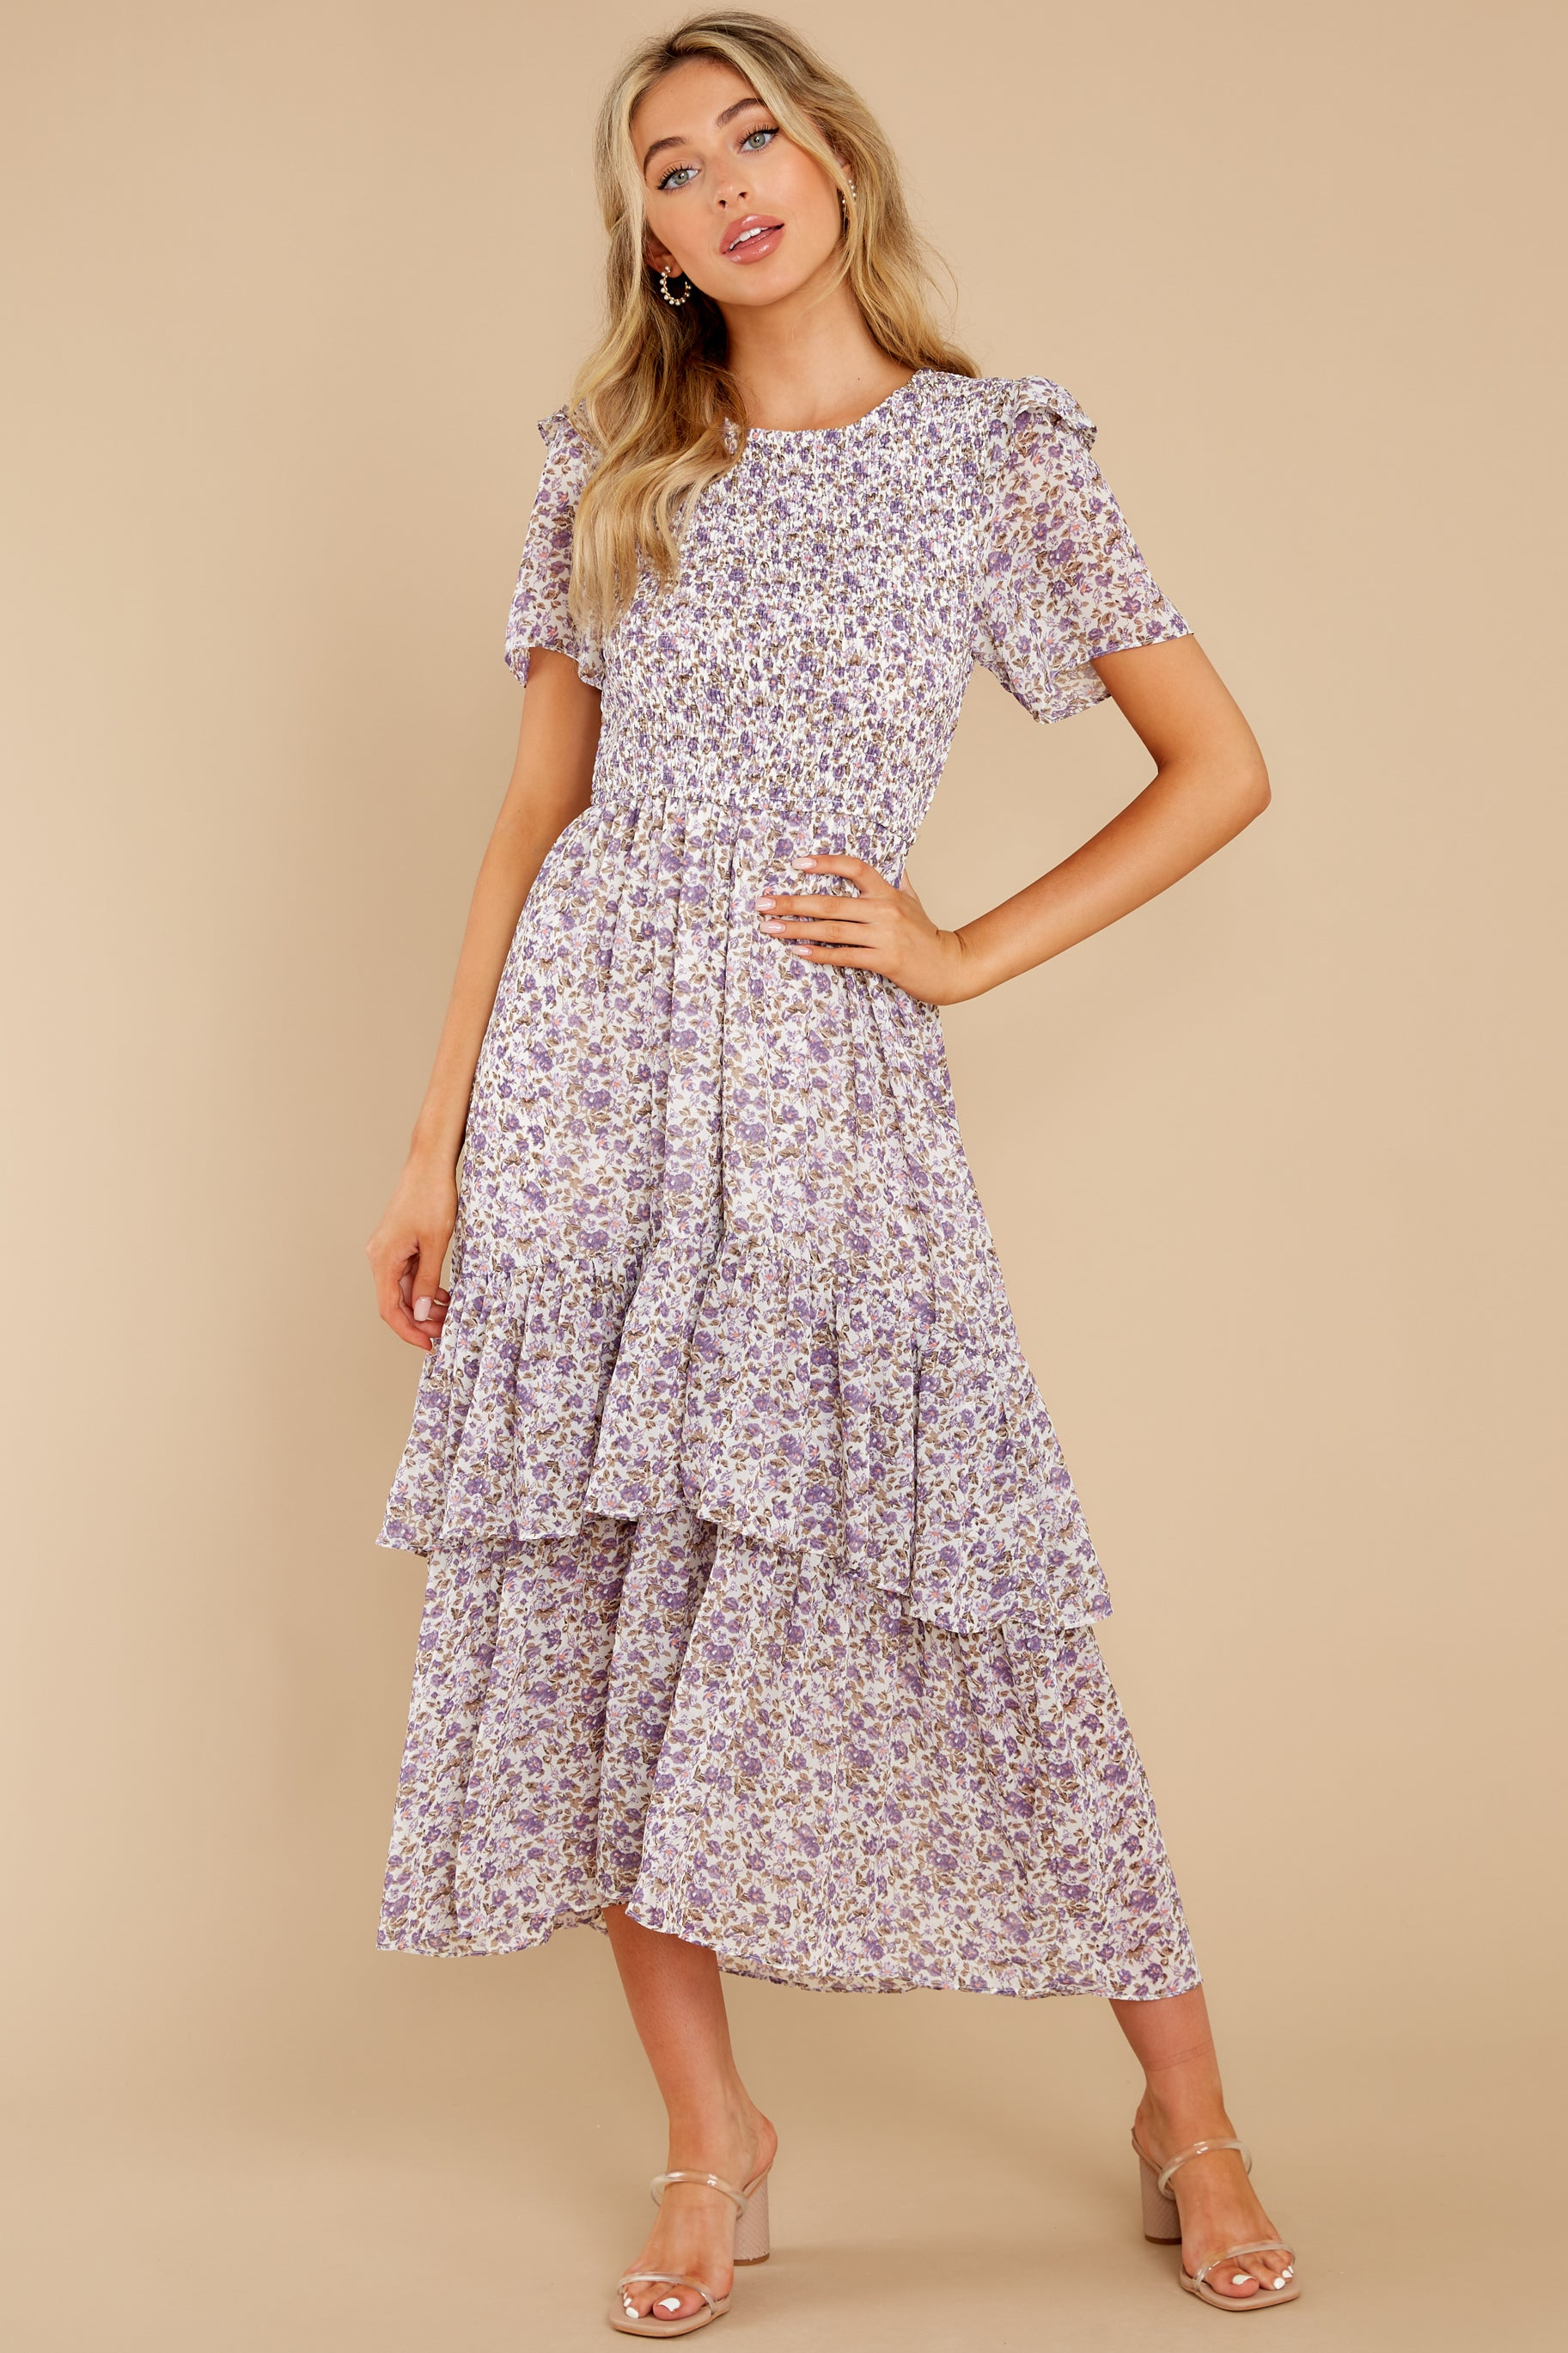 3 Magnetic Attraction Purple Floral Print Maxi Dress at reddress.com